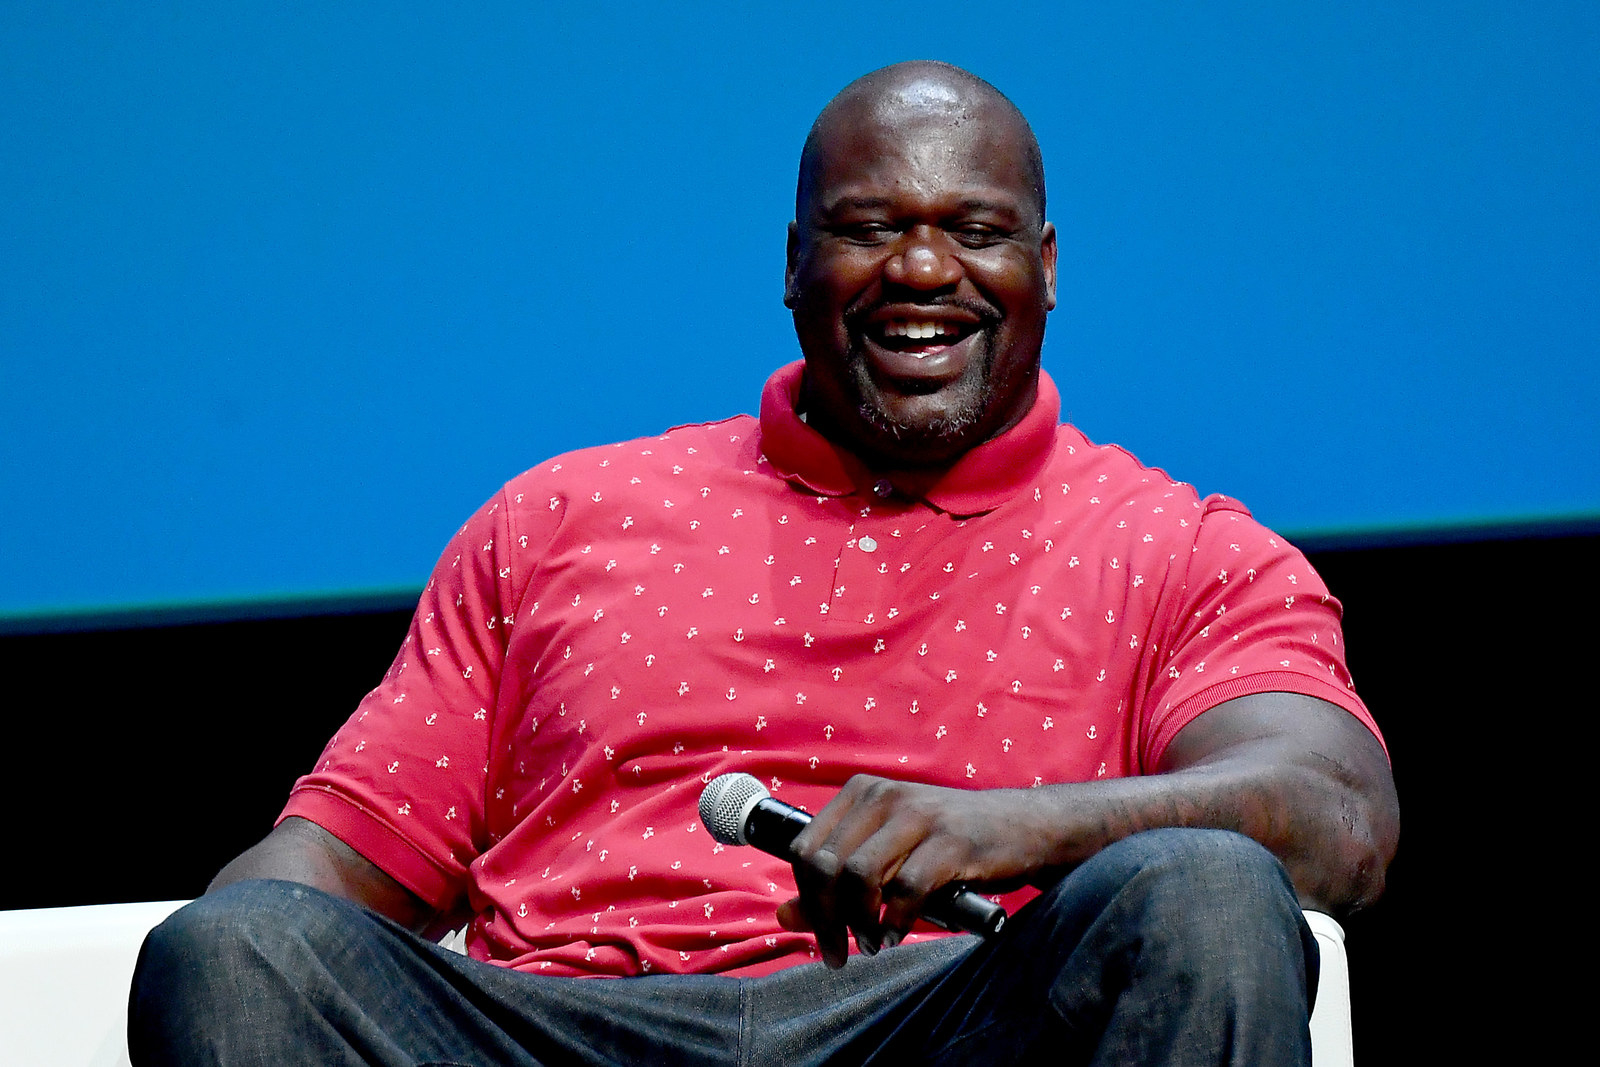 Shaq turns 47 on March 6.